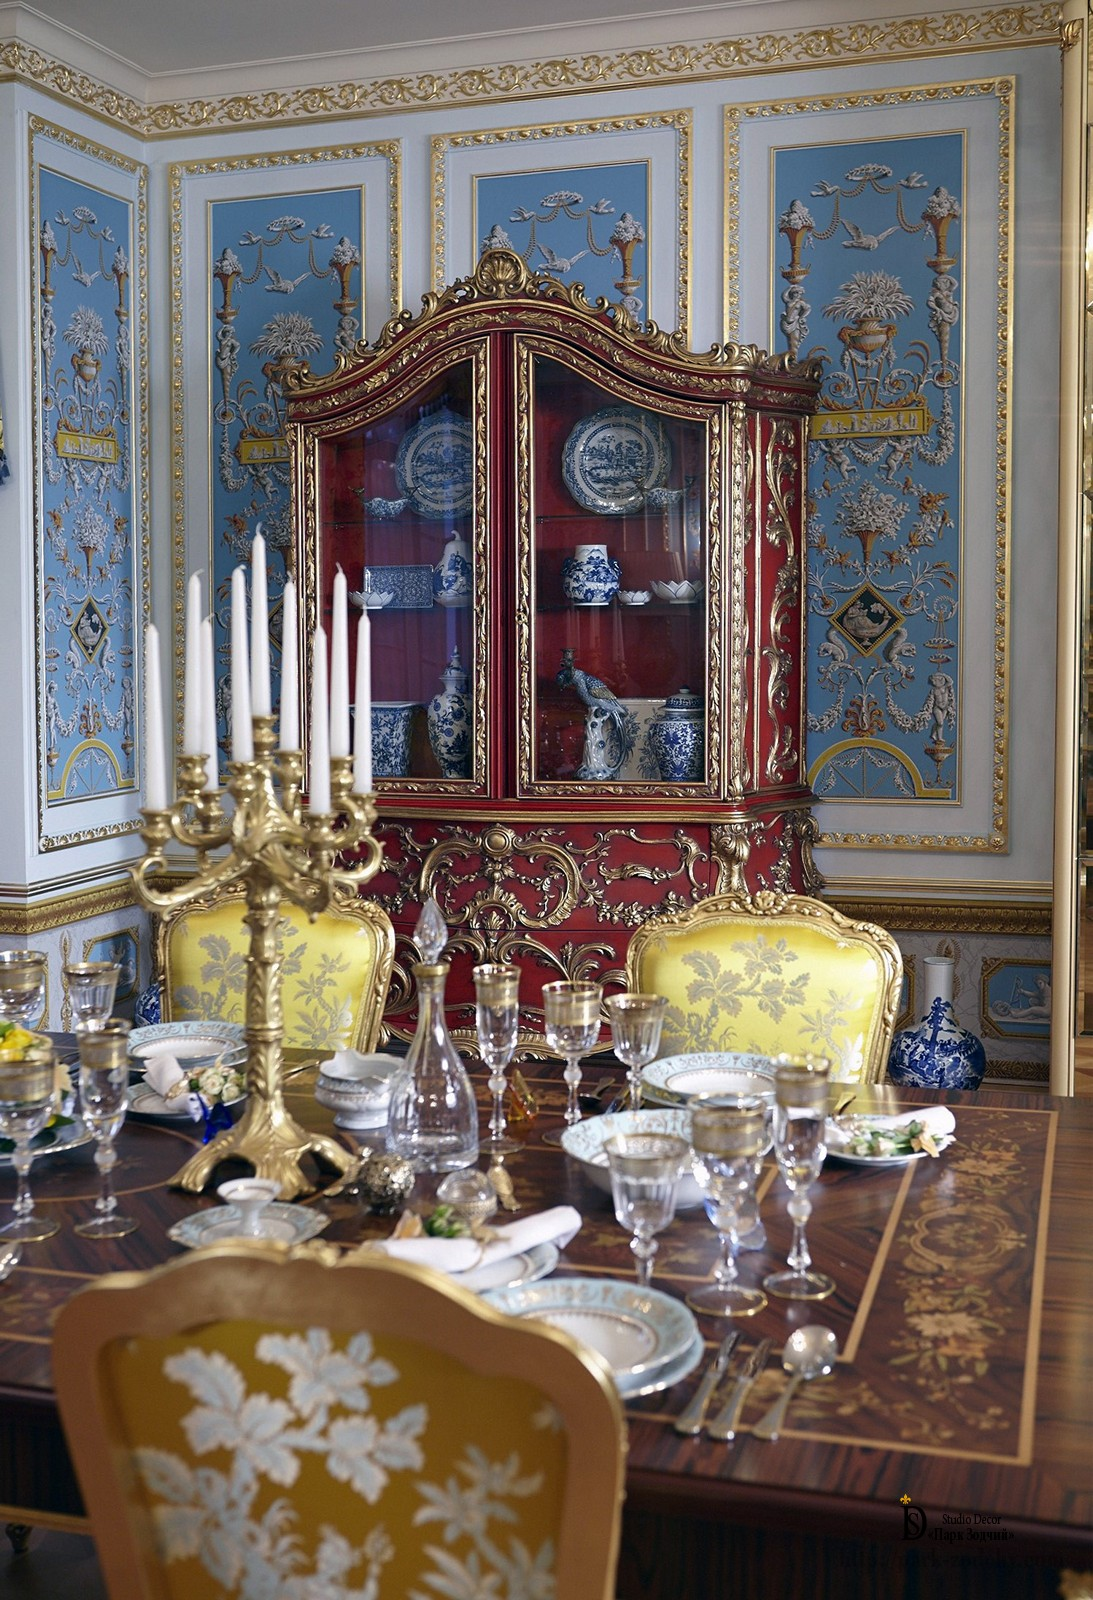 Baroque dining room with gilded stucco and decorative parquet